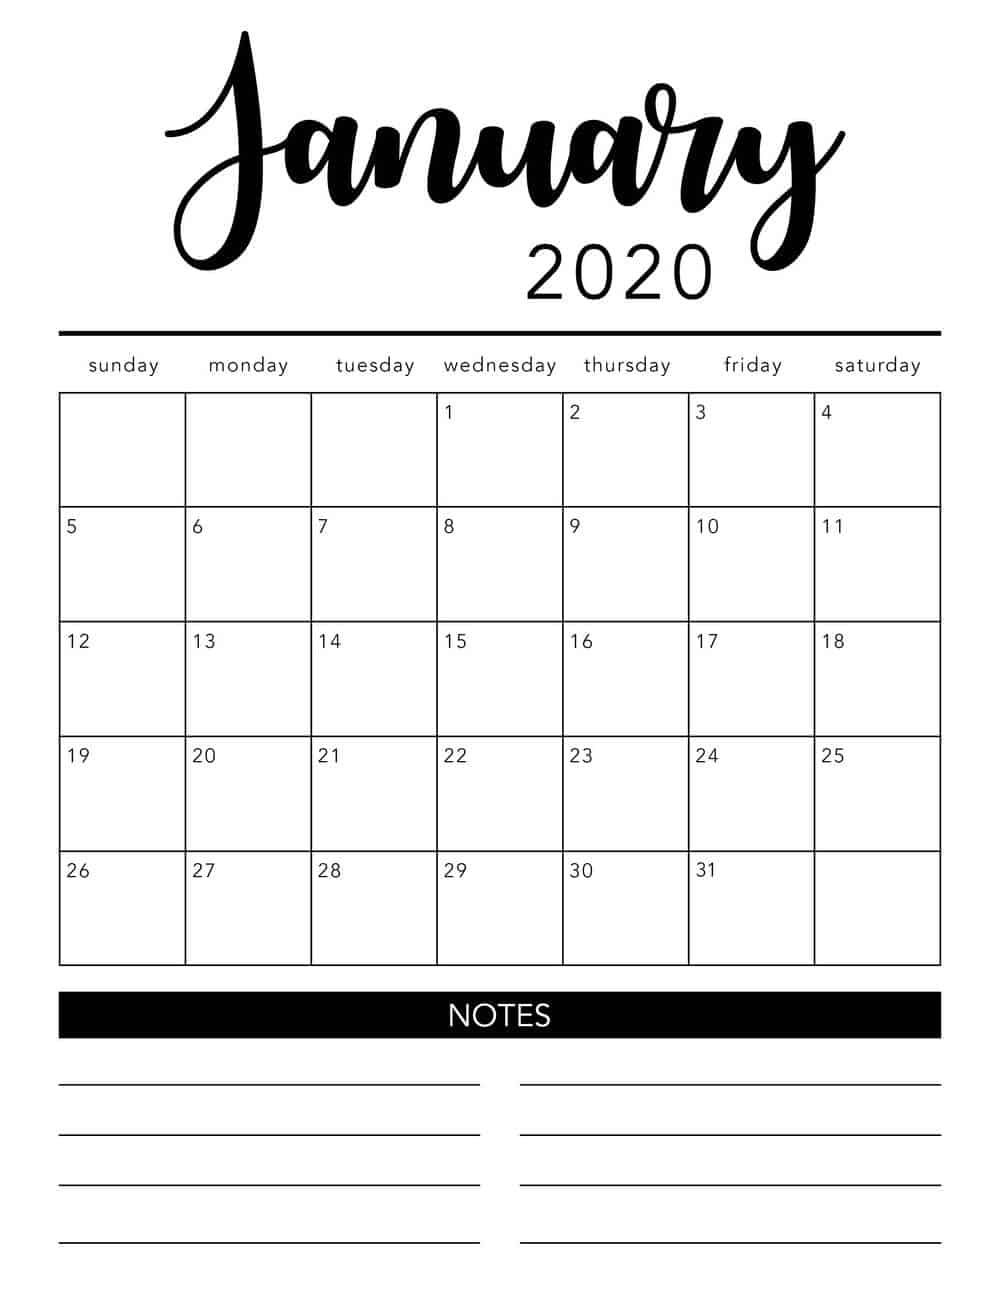 Free 2020 Printable Calendar Template (2 Colors!) - I Heart in 2020 Free Printable Calendars Without Downloading Monthly